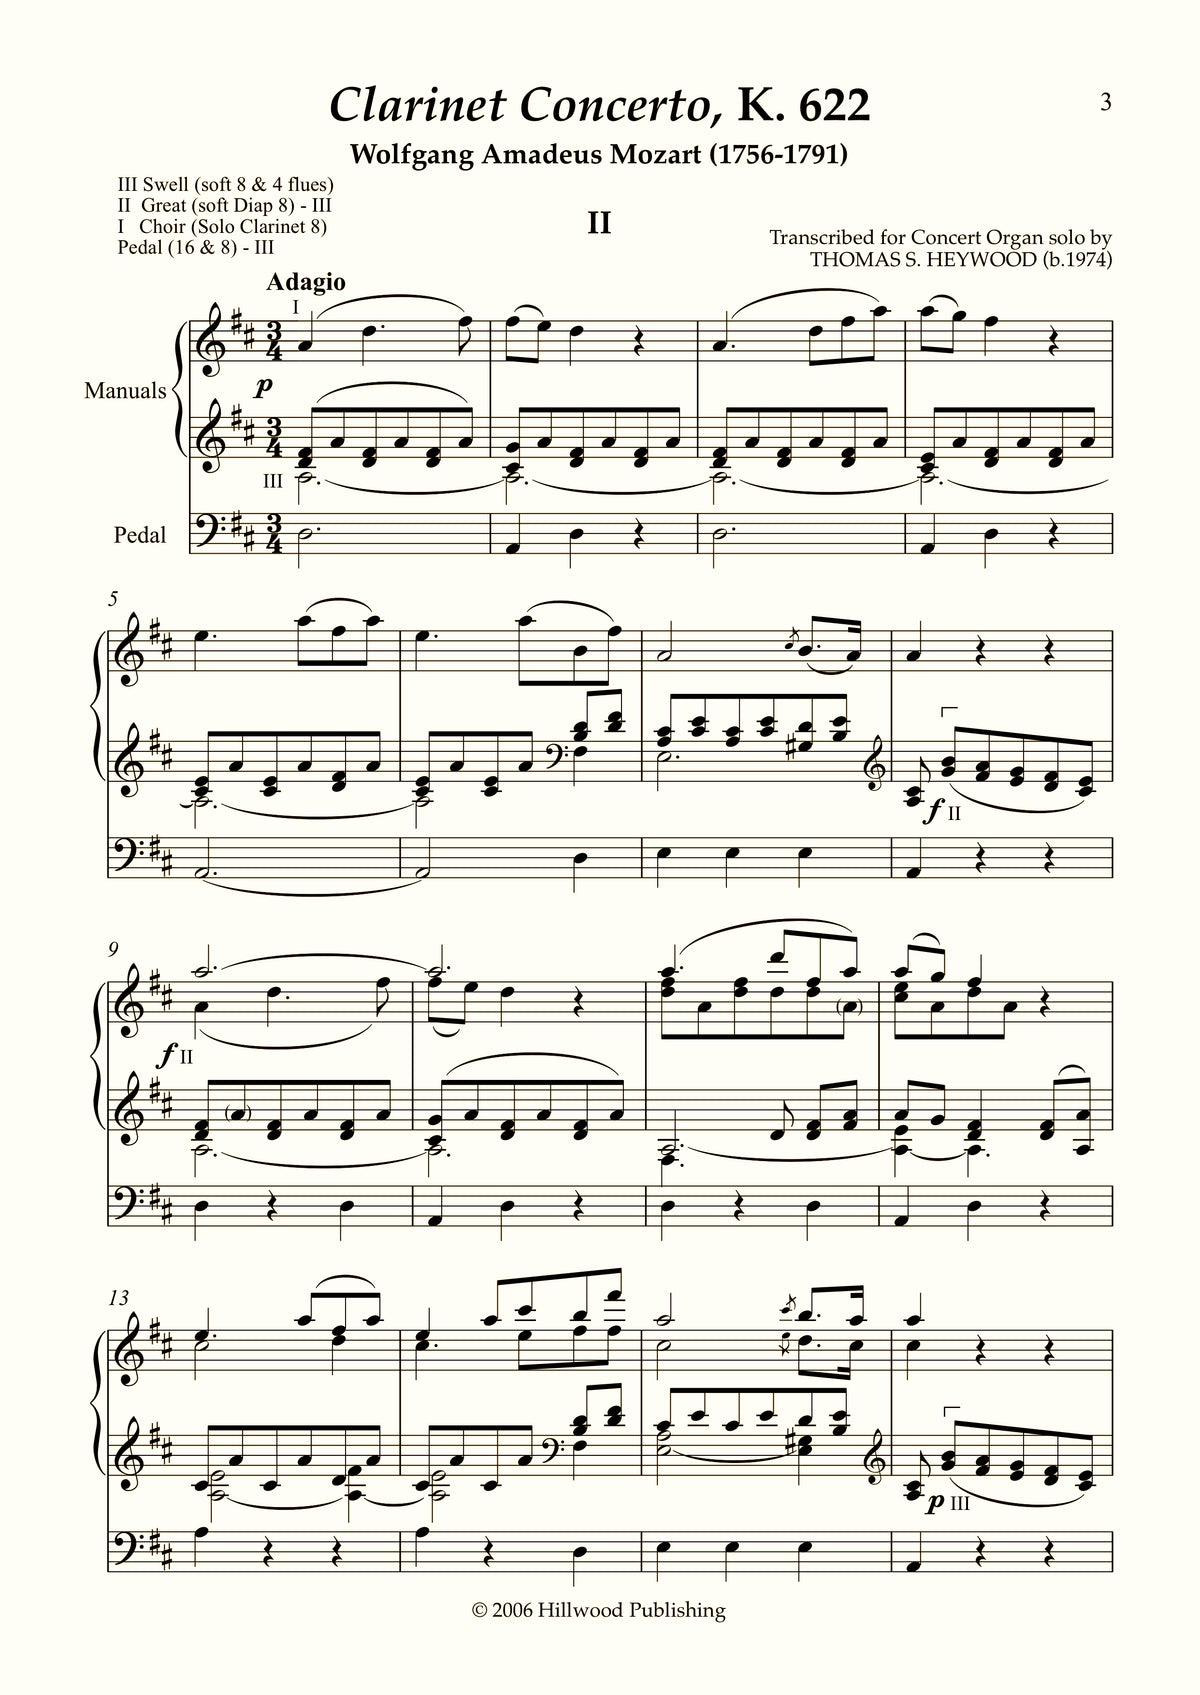 Mozart/Heywood - Adagio from the Clarinet Concerto, K. 622 (Score)